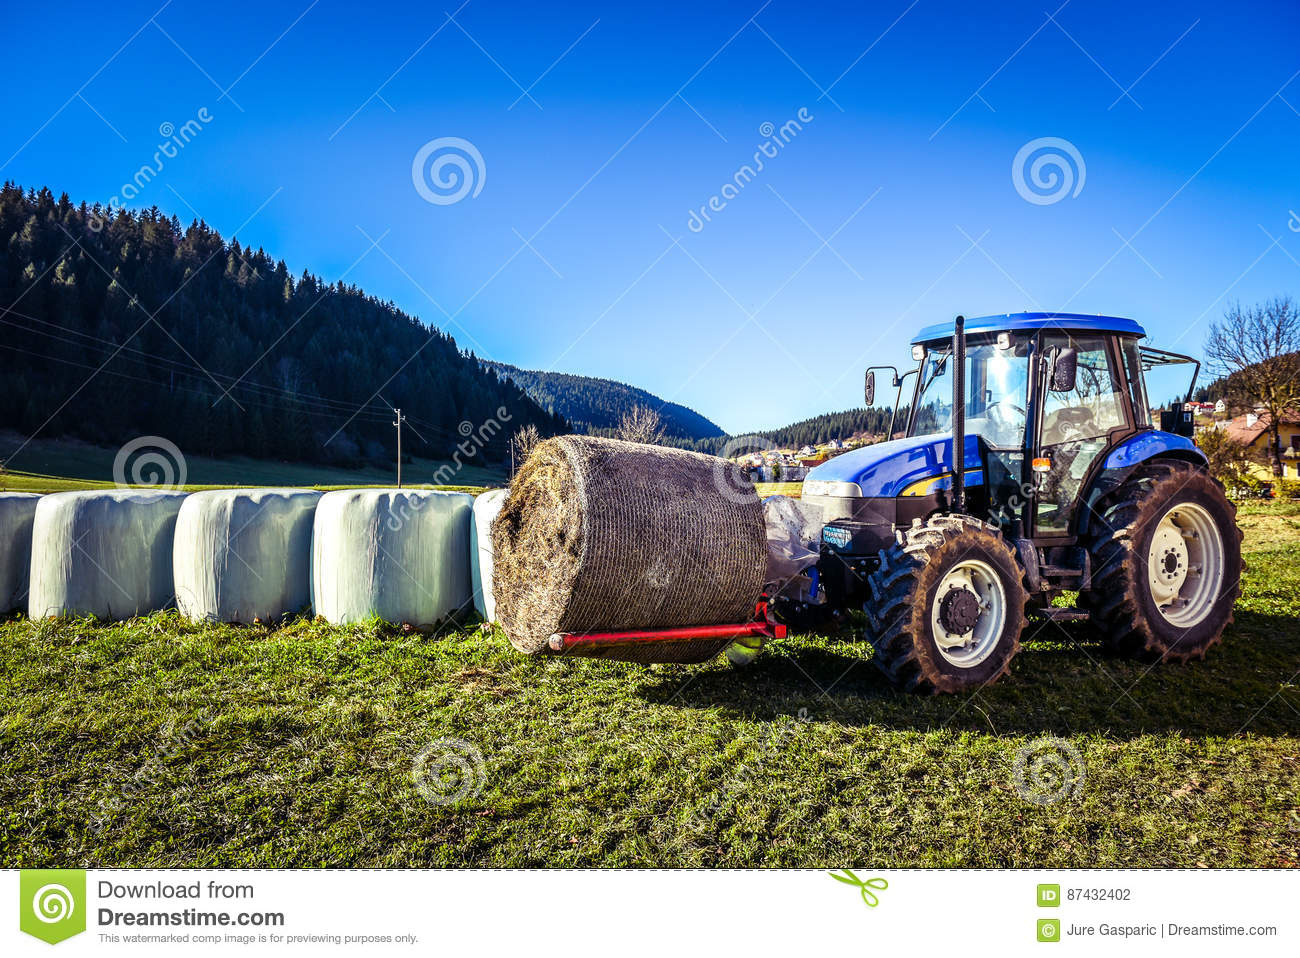 Hay Farmer Tractor Cartoon : Tractor hay bale cartoon vector cartoondealer